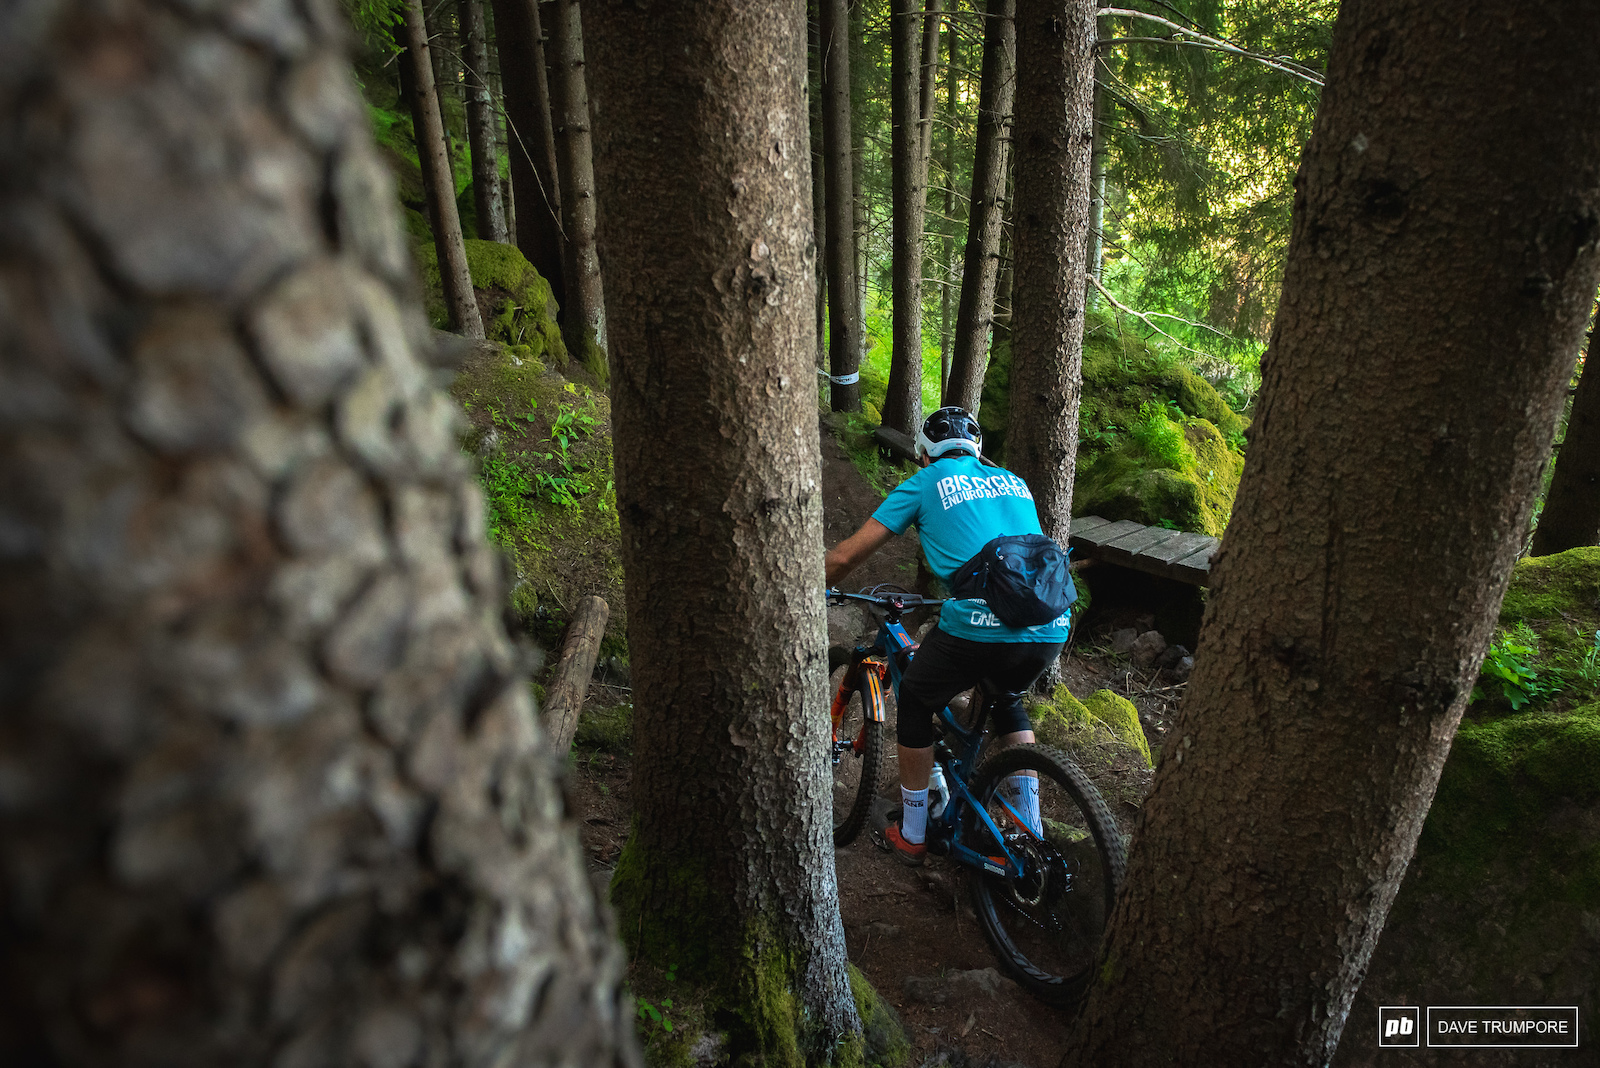 Niklas Wallner squeezes through the tight trees at the bottom of Stage 1.